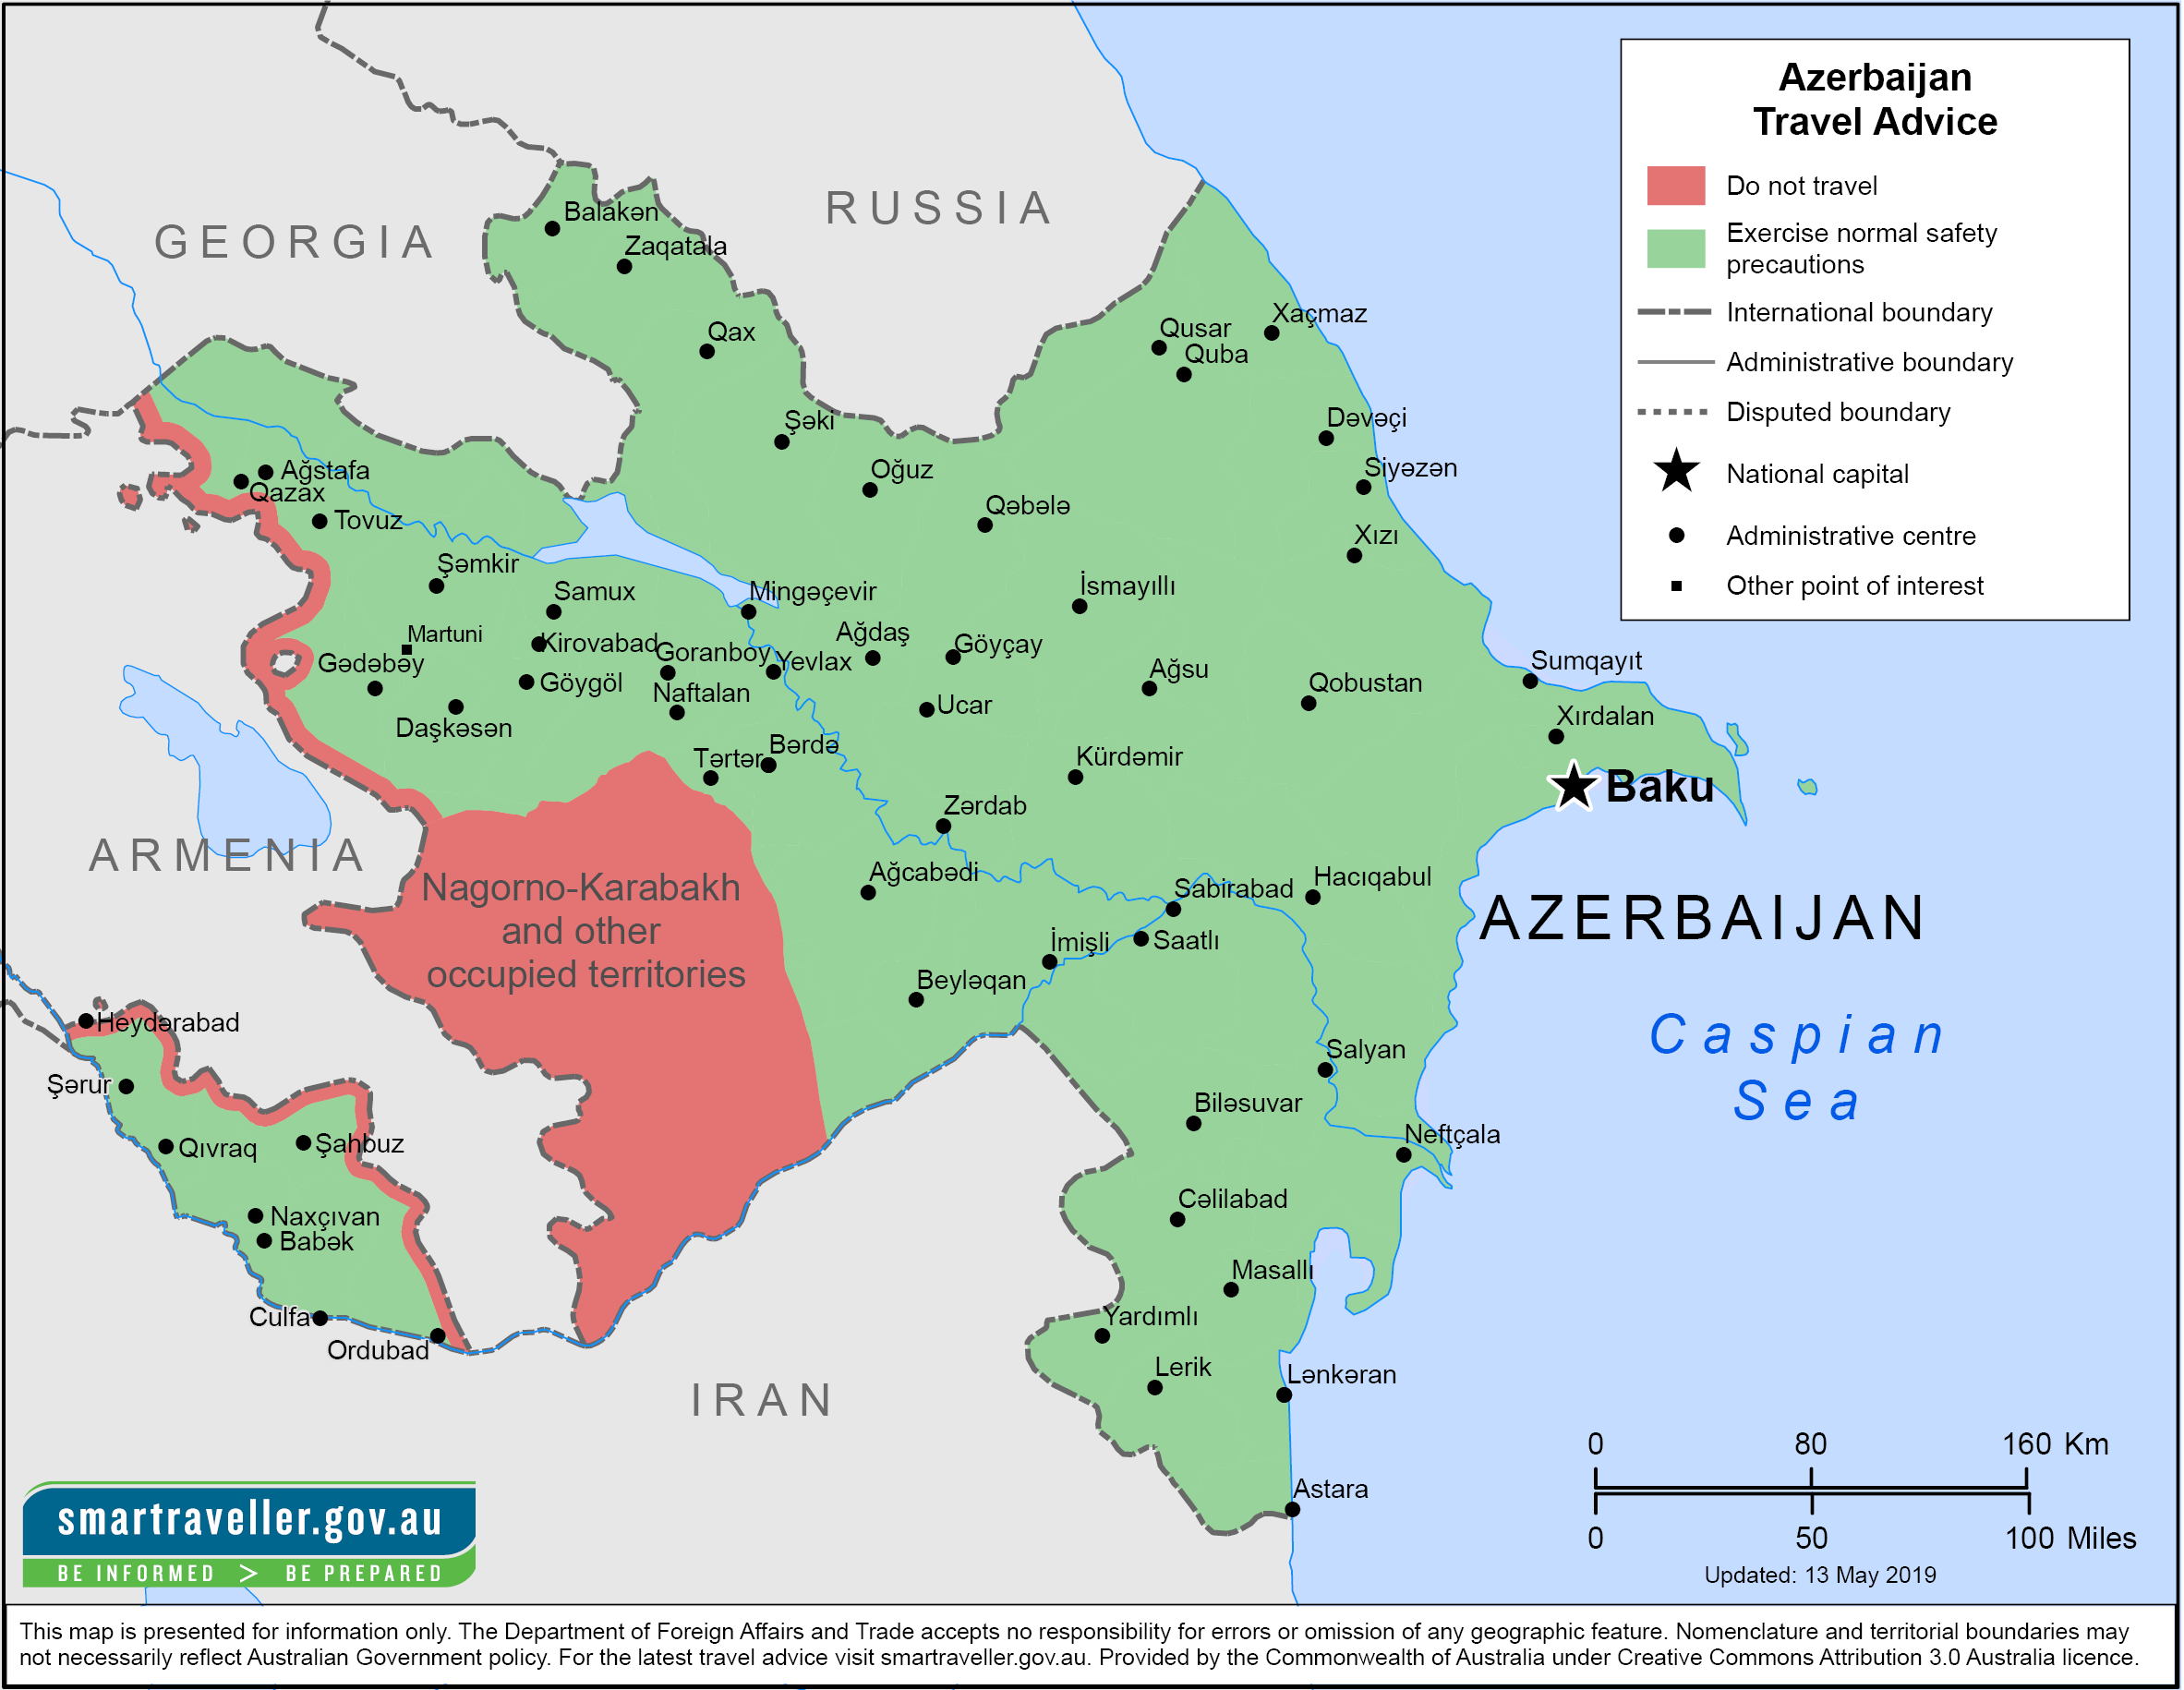 Azerbaijan Traveler Information - Travel Advice